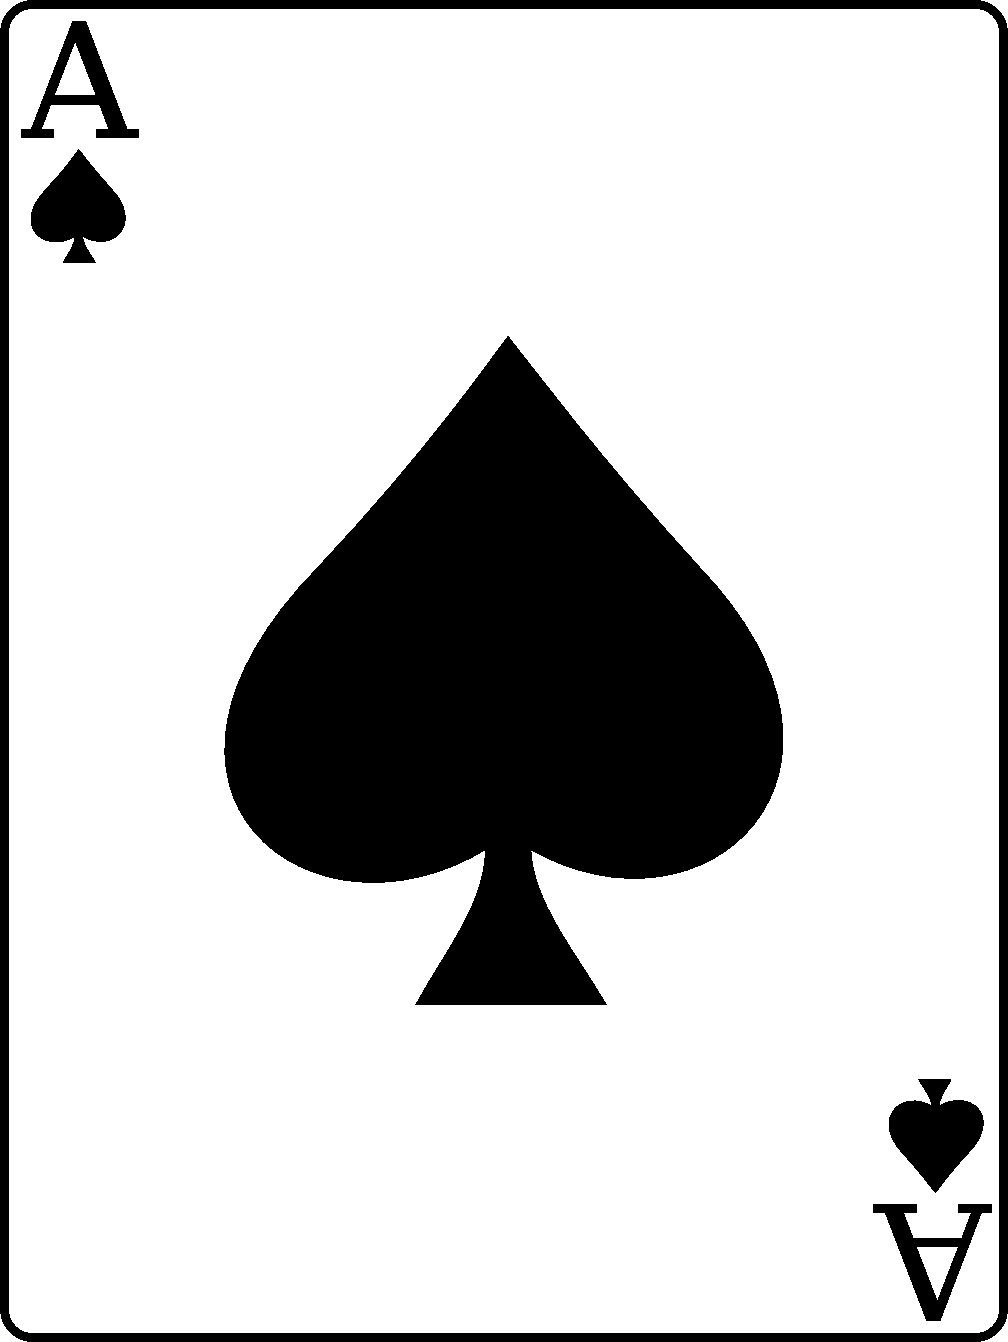 Cards clipart ace spades #3